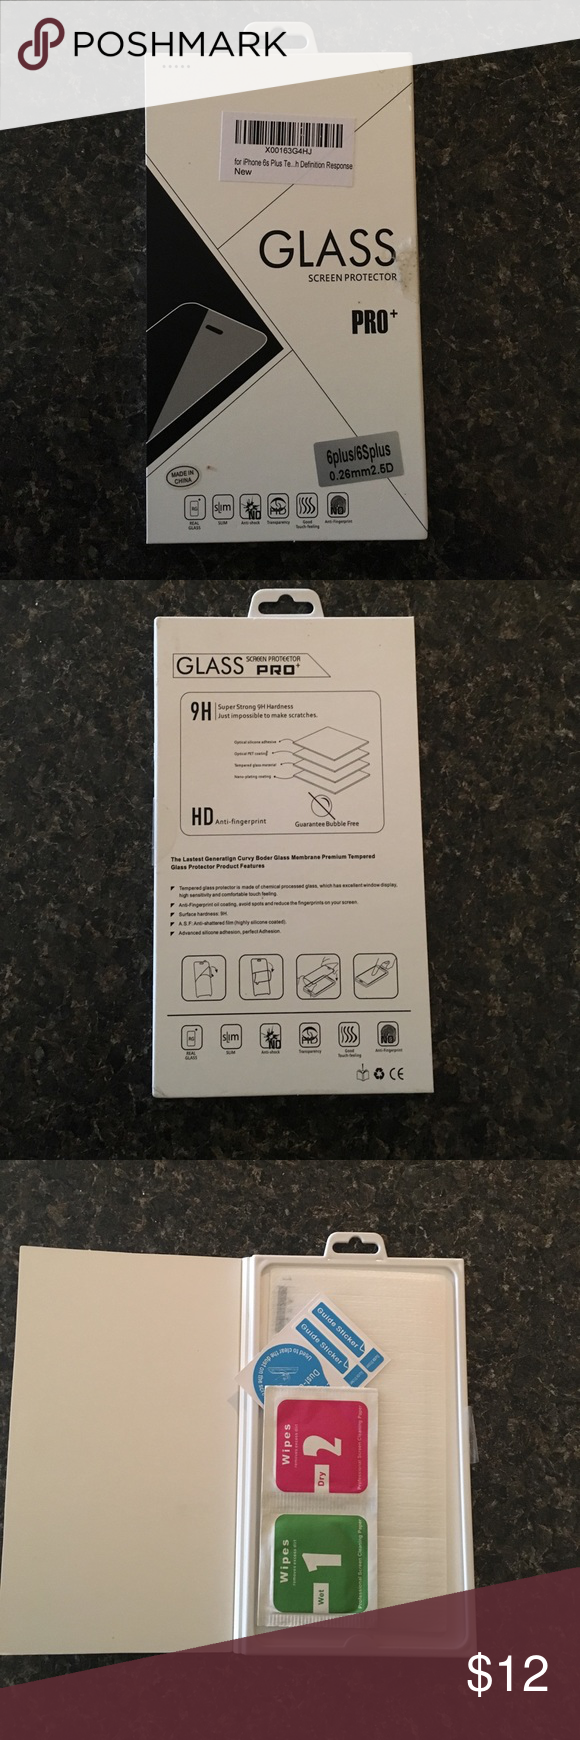 Glass Screen Protector for iPhone 6 Plus Glass screen protector for iPhone 6 Plus and 6s plus! I bought the wrong size so it is brand new. Just trying to get my money back Accessories Phone Cases